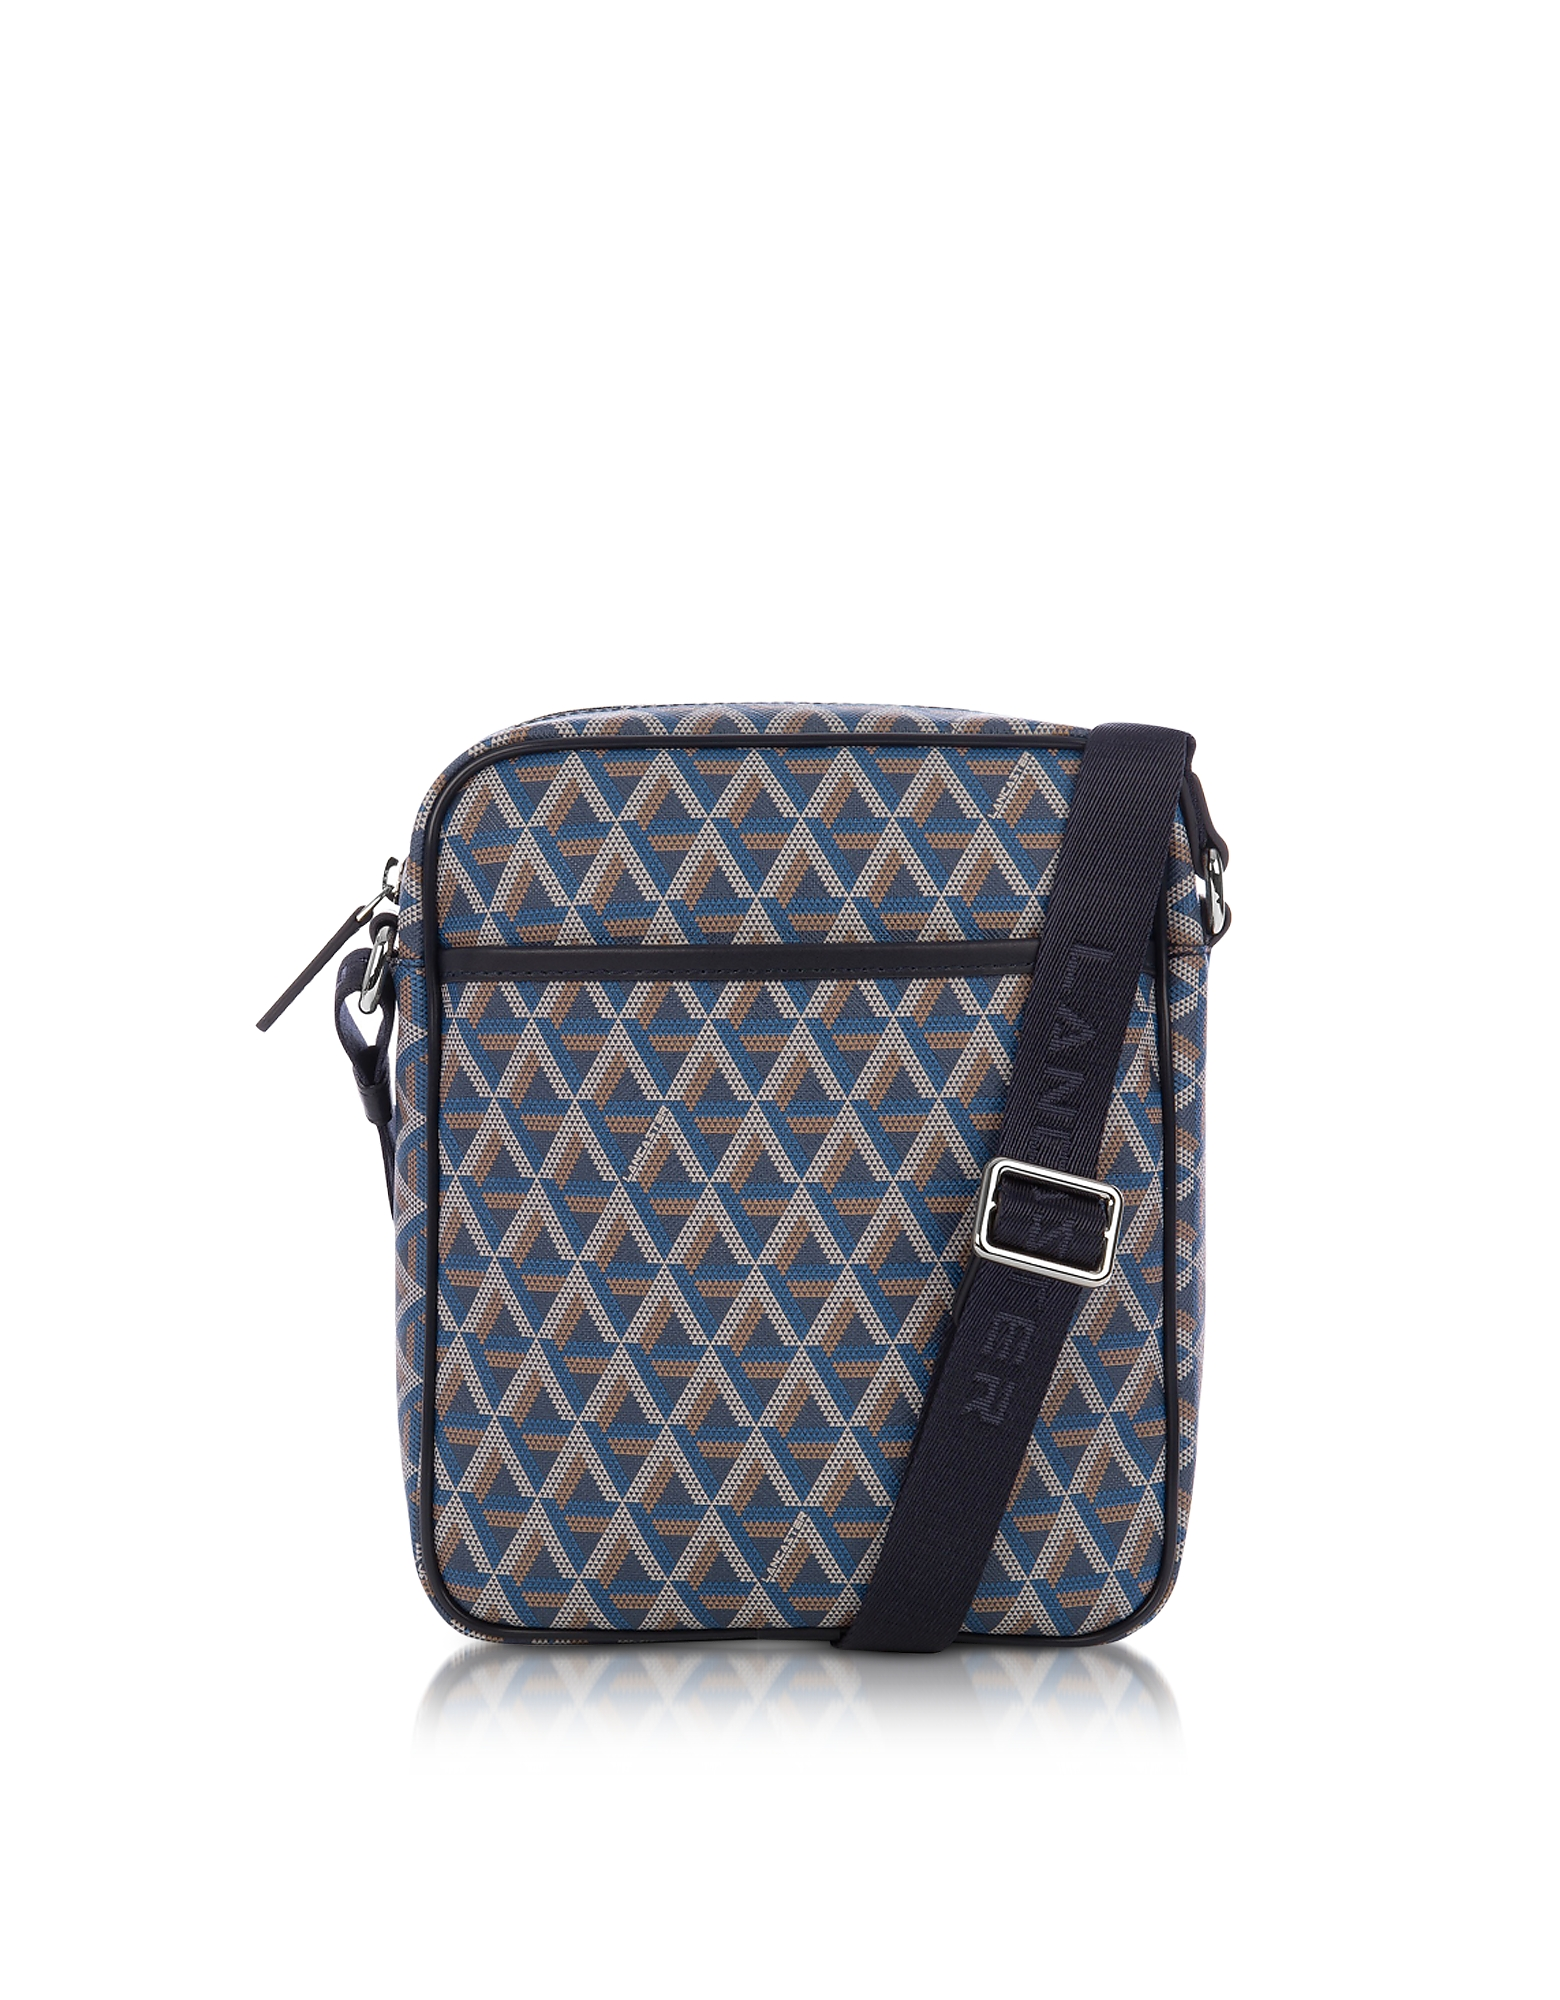 Lancaster Paris Men's Bags, Ikon Blue Coated Canvas Men's Crossbody Bag